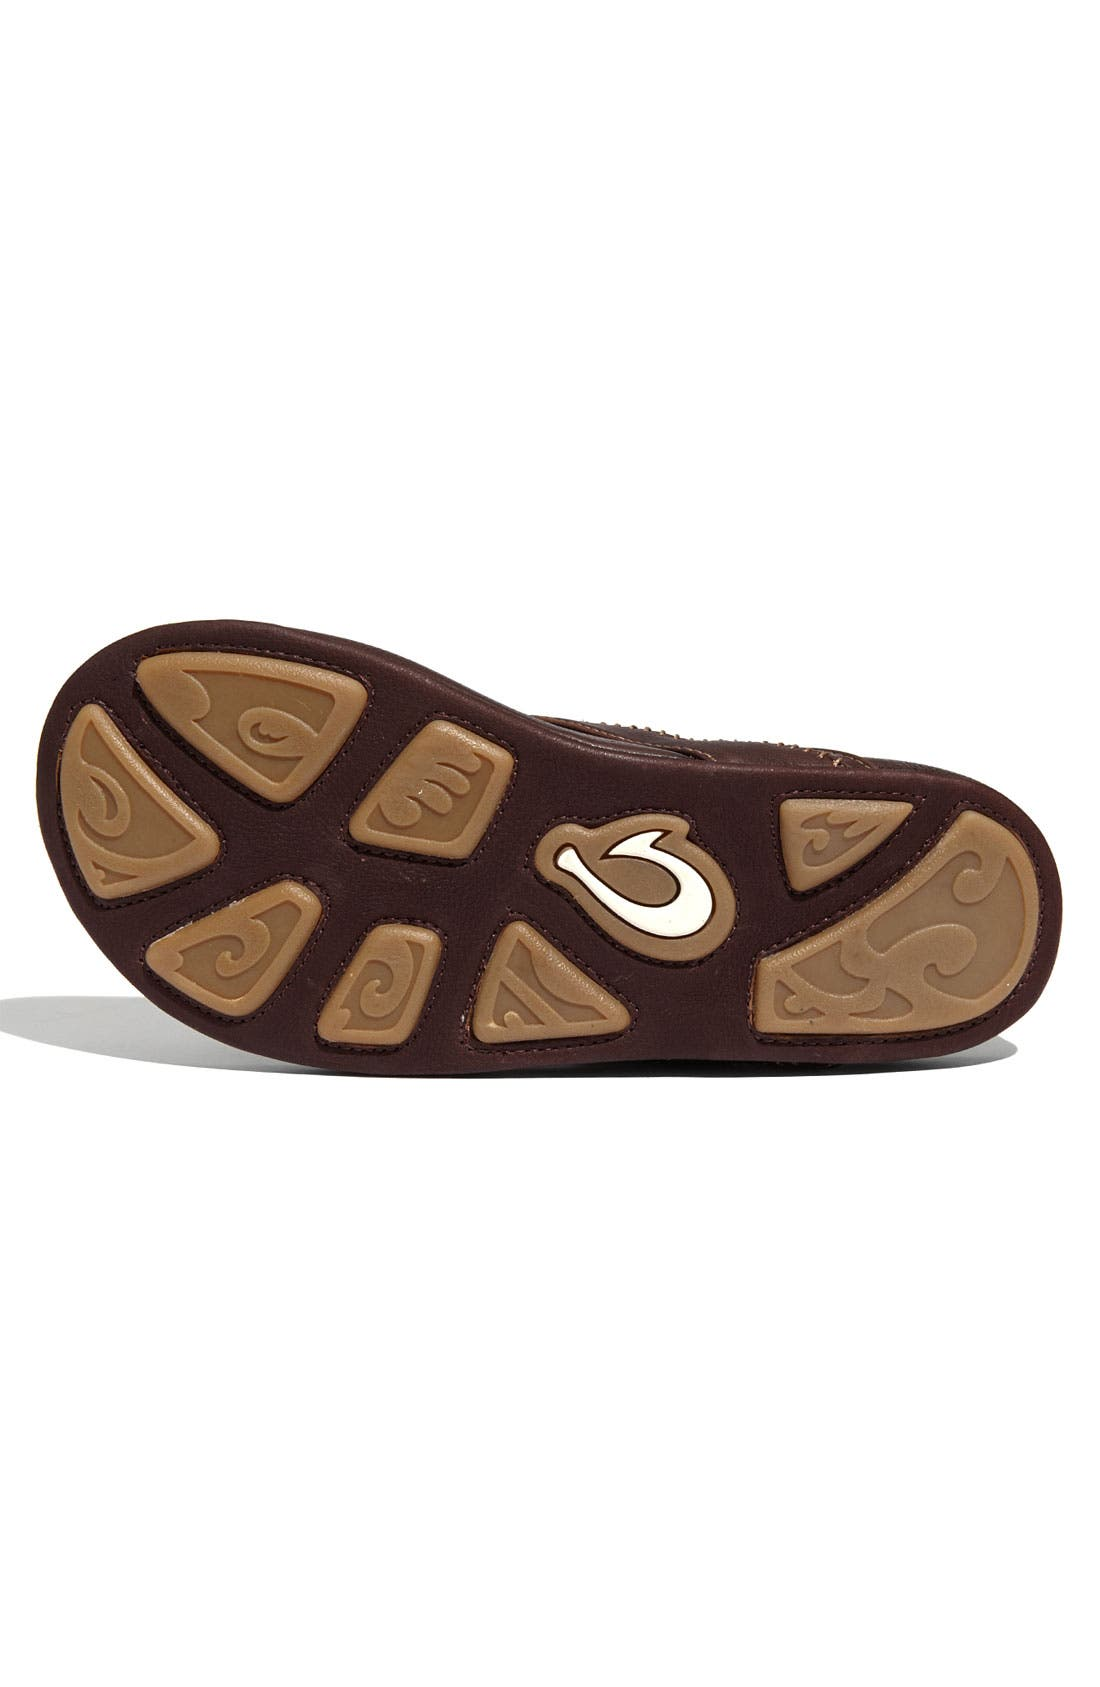 OLUKAI,                             'Hiapo' Flip Flop,                             Alternate thumbnail 2, color,                             TEAK/ TEAK